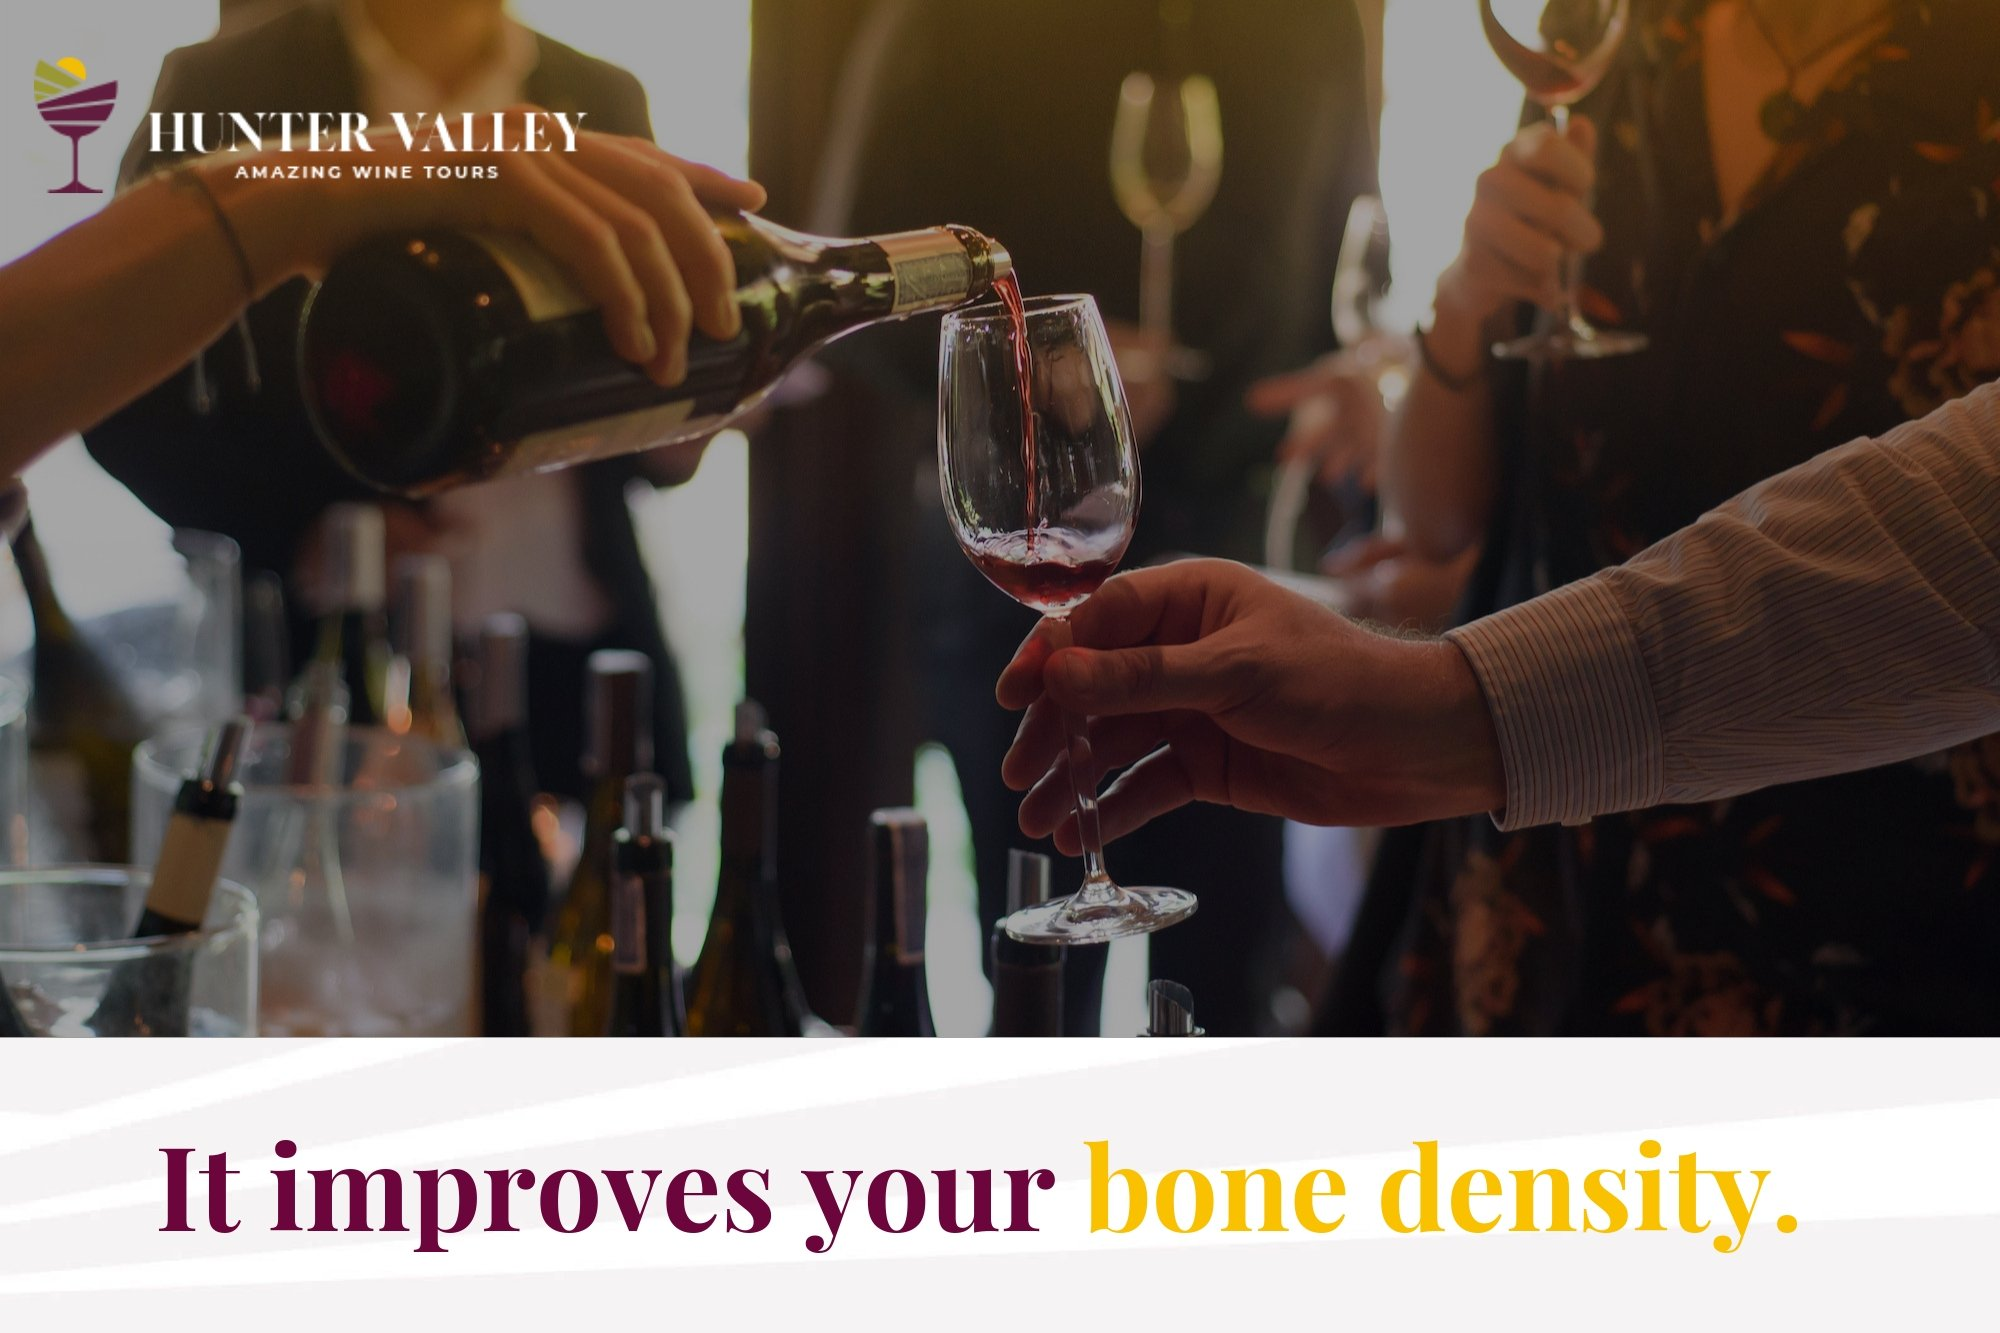 improve bone density